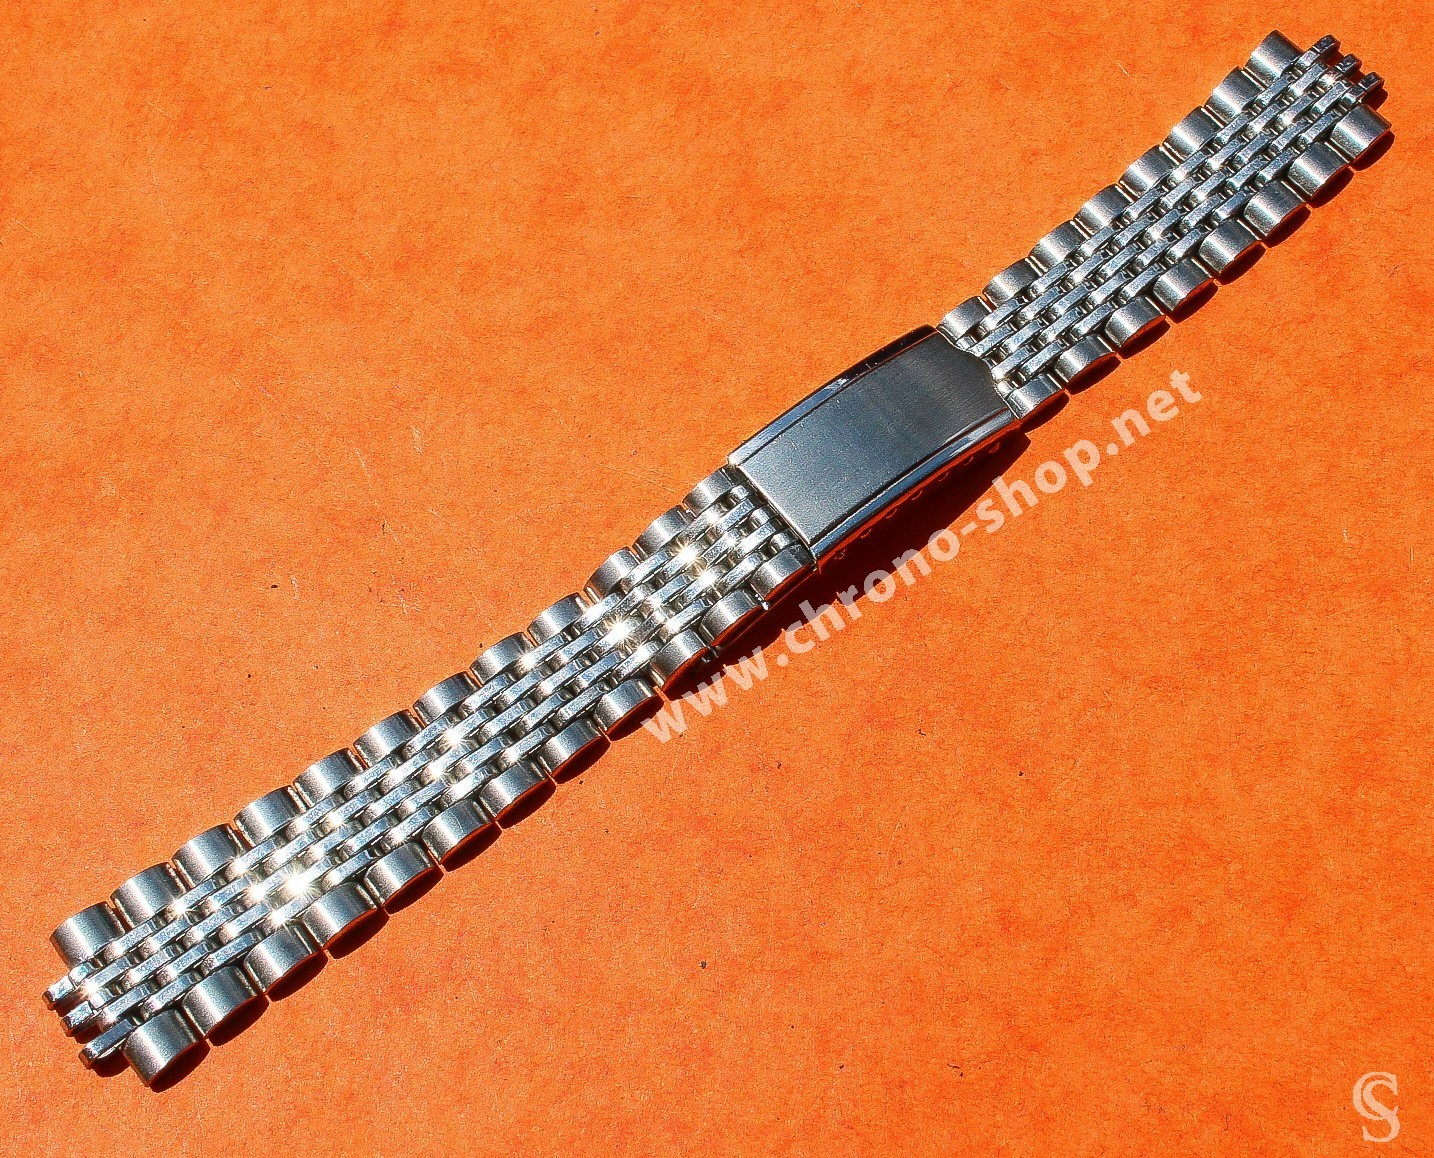 Accessories Watch Vintage Rare 60's Bracelet Beads of Rice beads Steel Luxurious Watches Omega, Tag Heuer, Rolex, Seiko